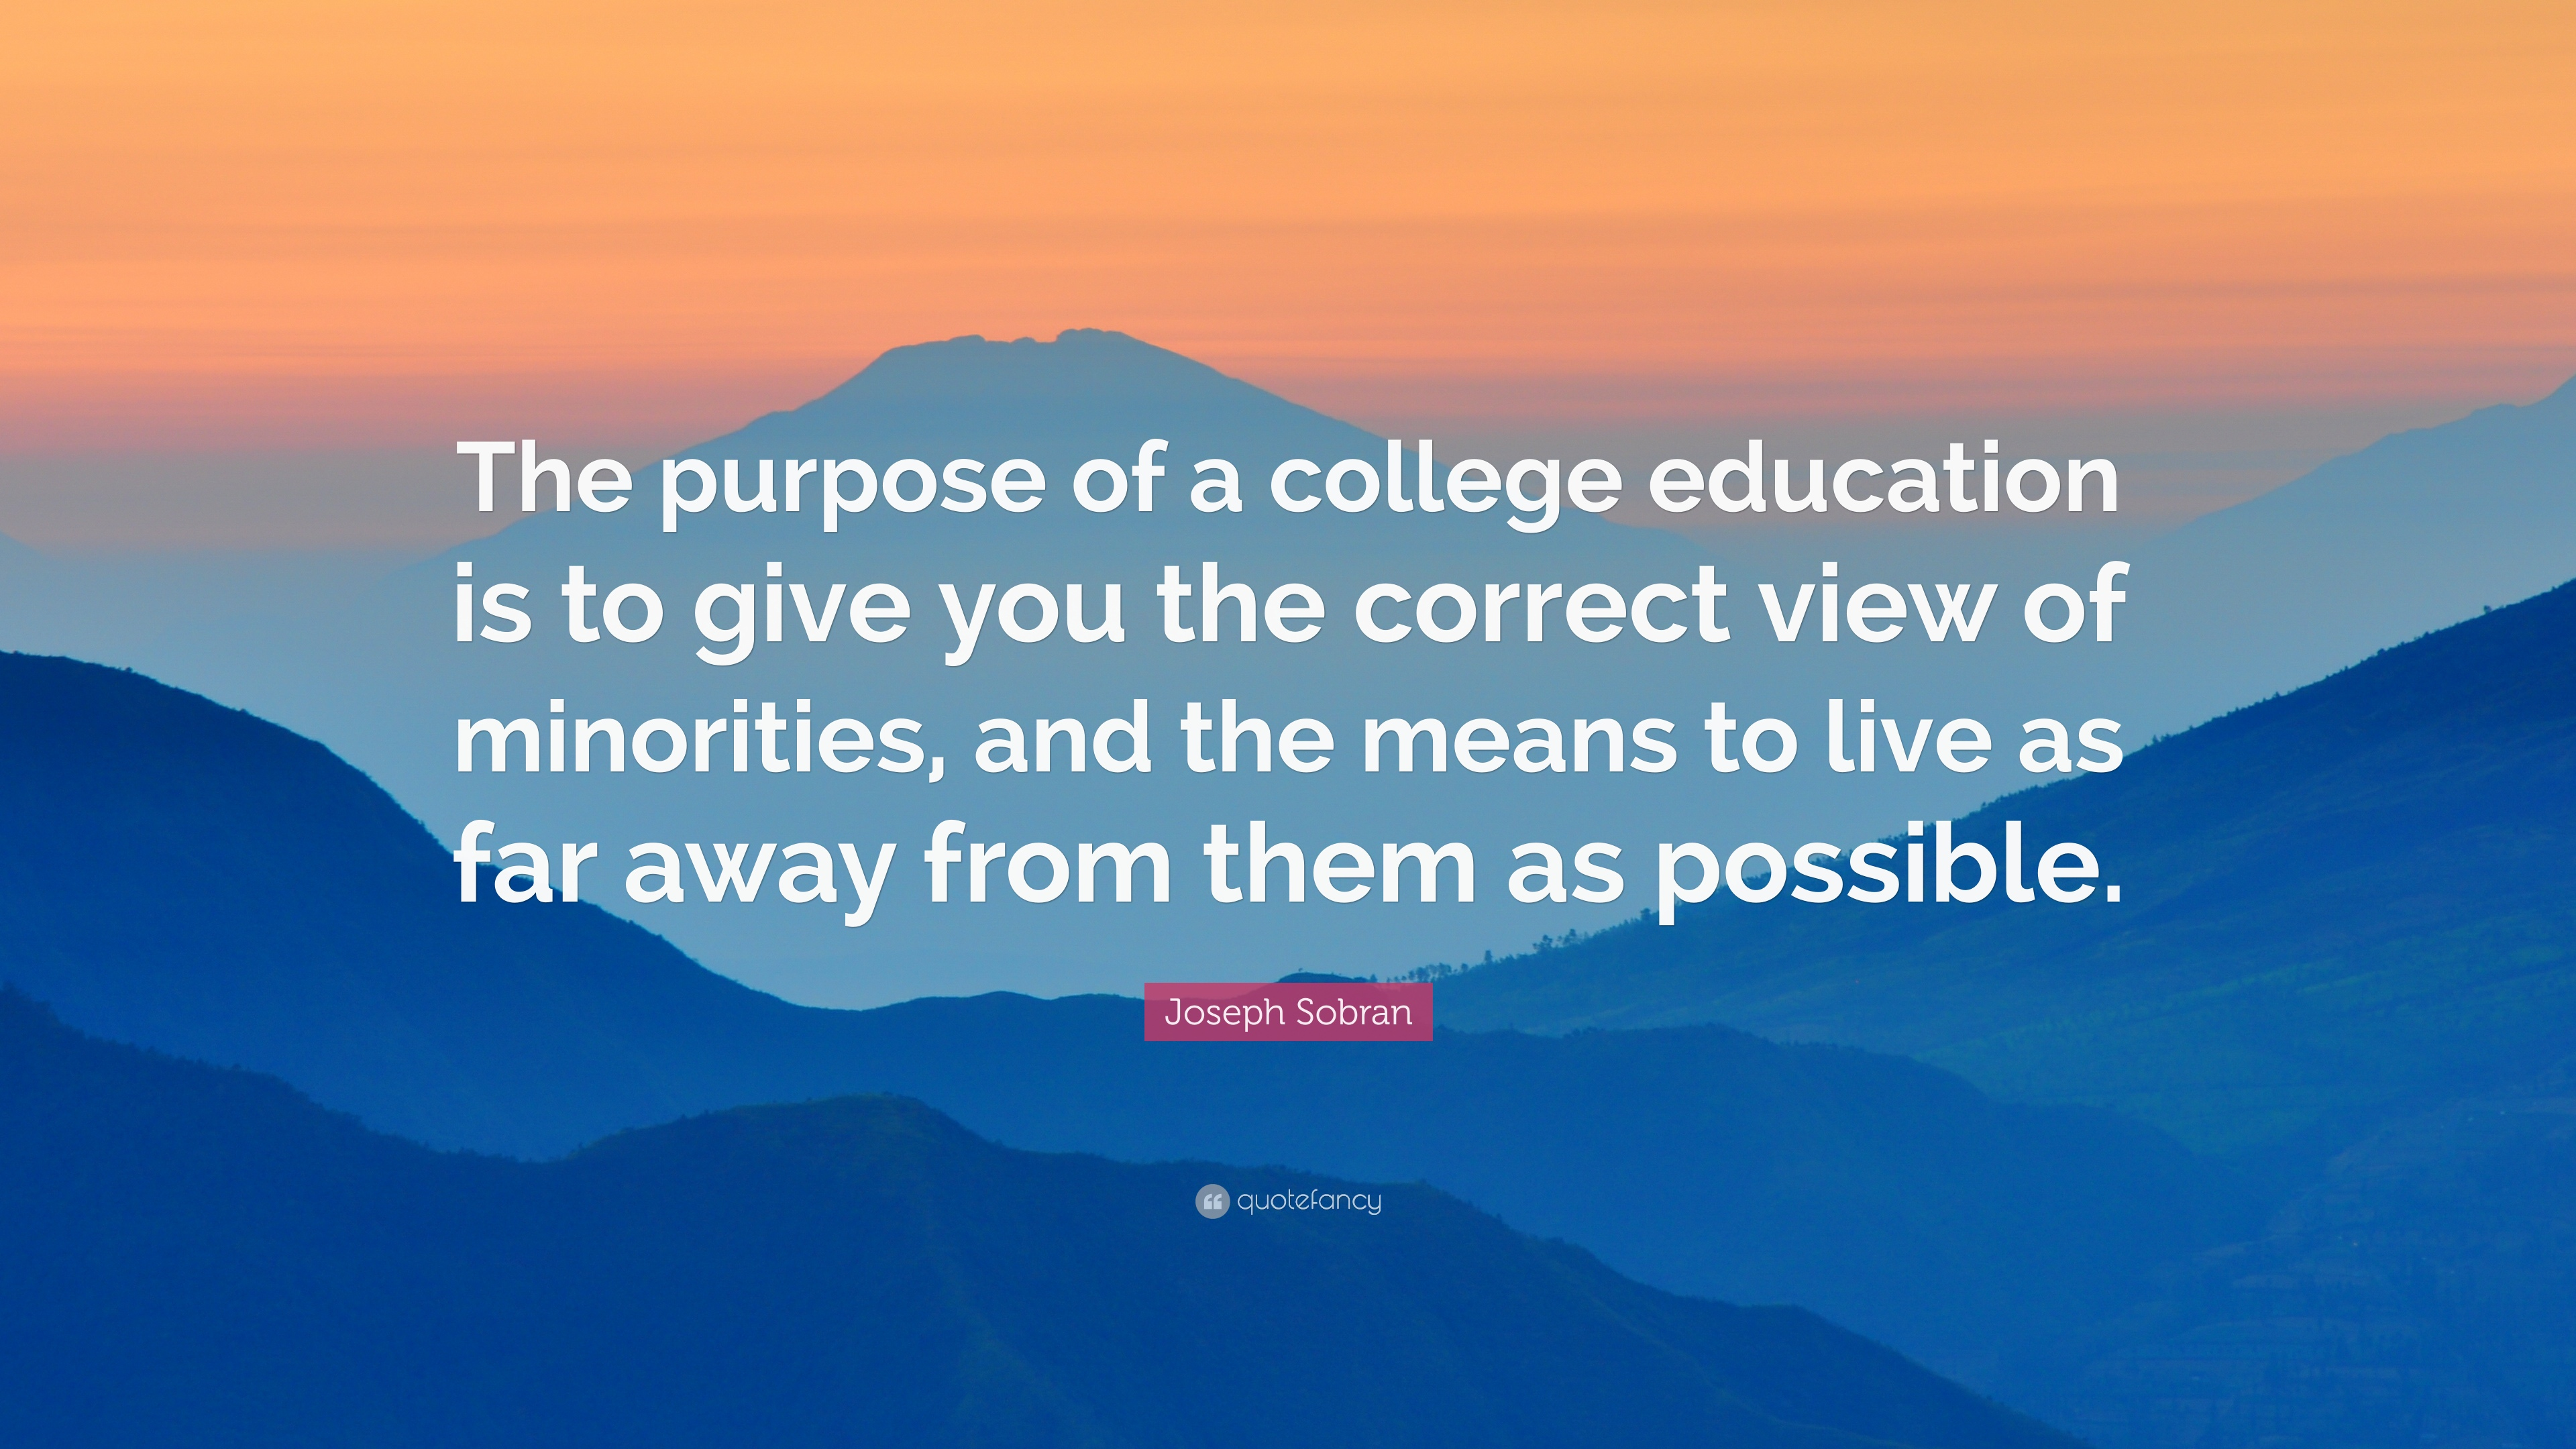 The purpose of a college education